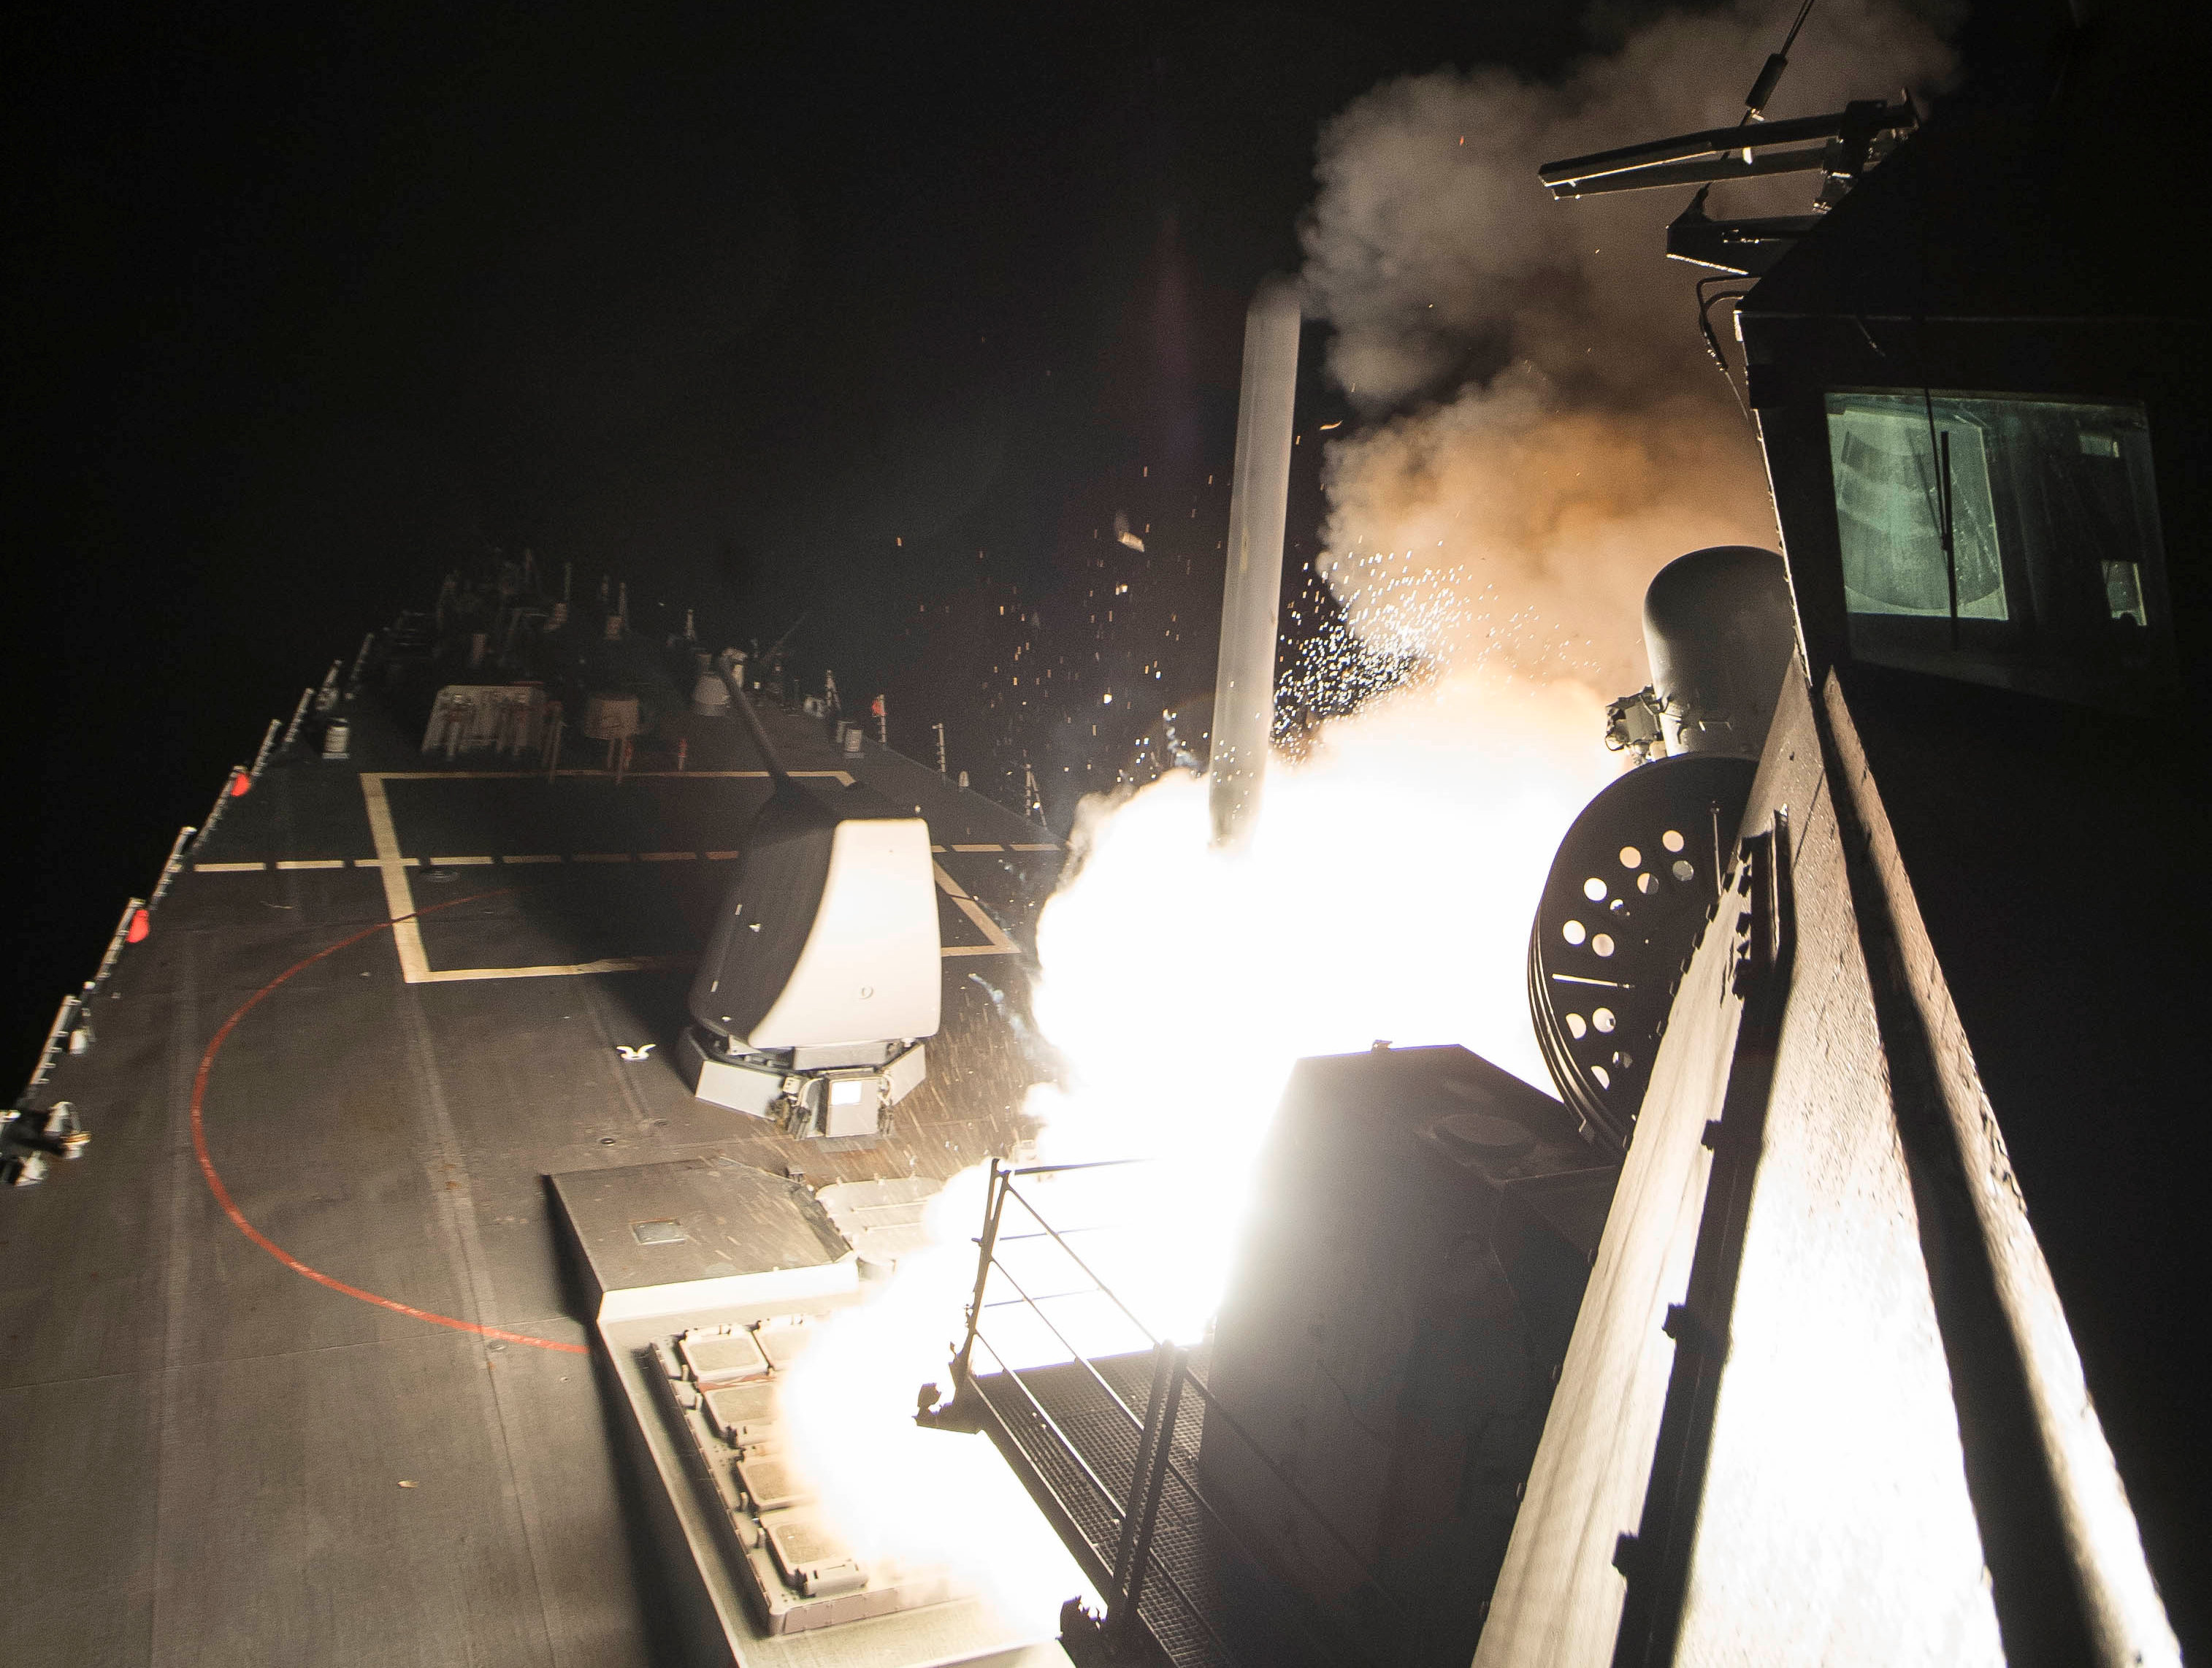 U.S. Navy guided-missile destroyer USS Ross fires a tomahawk land attack missile in Mediterranean Sea, part of a cruise missile strike against Syria. Robert S. Price/Courtesy U.S. Navy